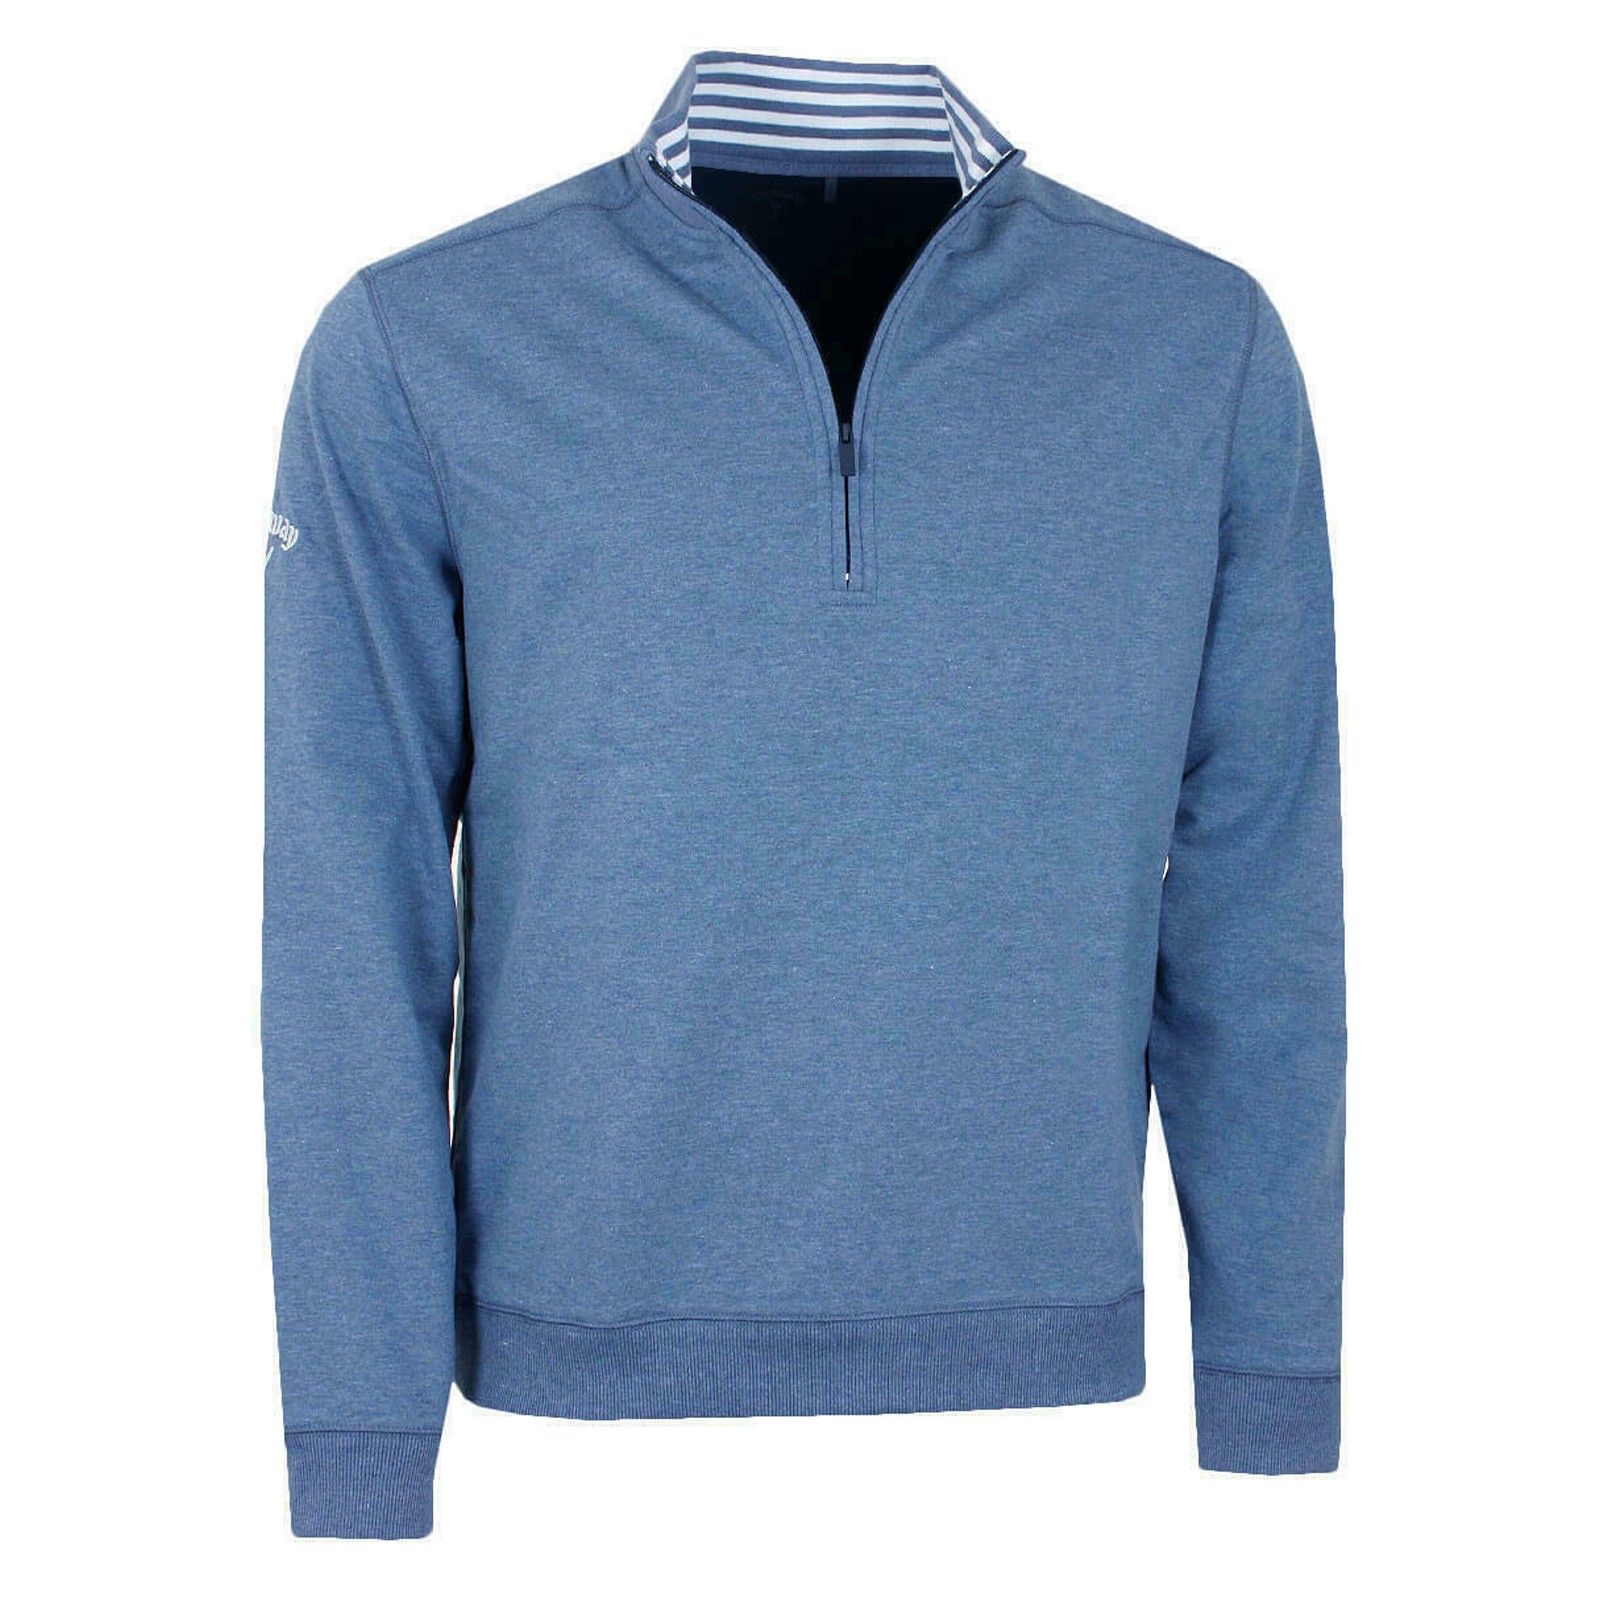 Callaway French Terry 1/4 Zip Pullovers